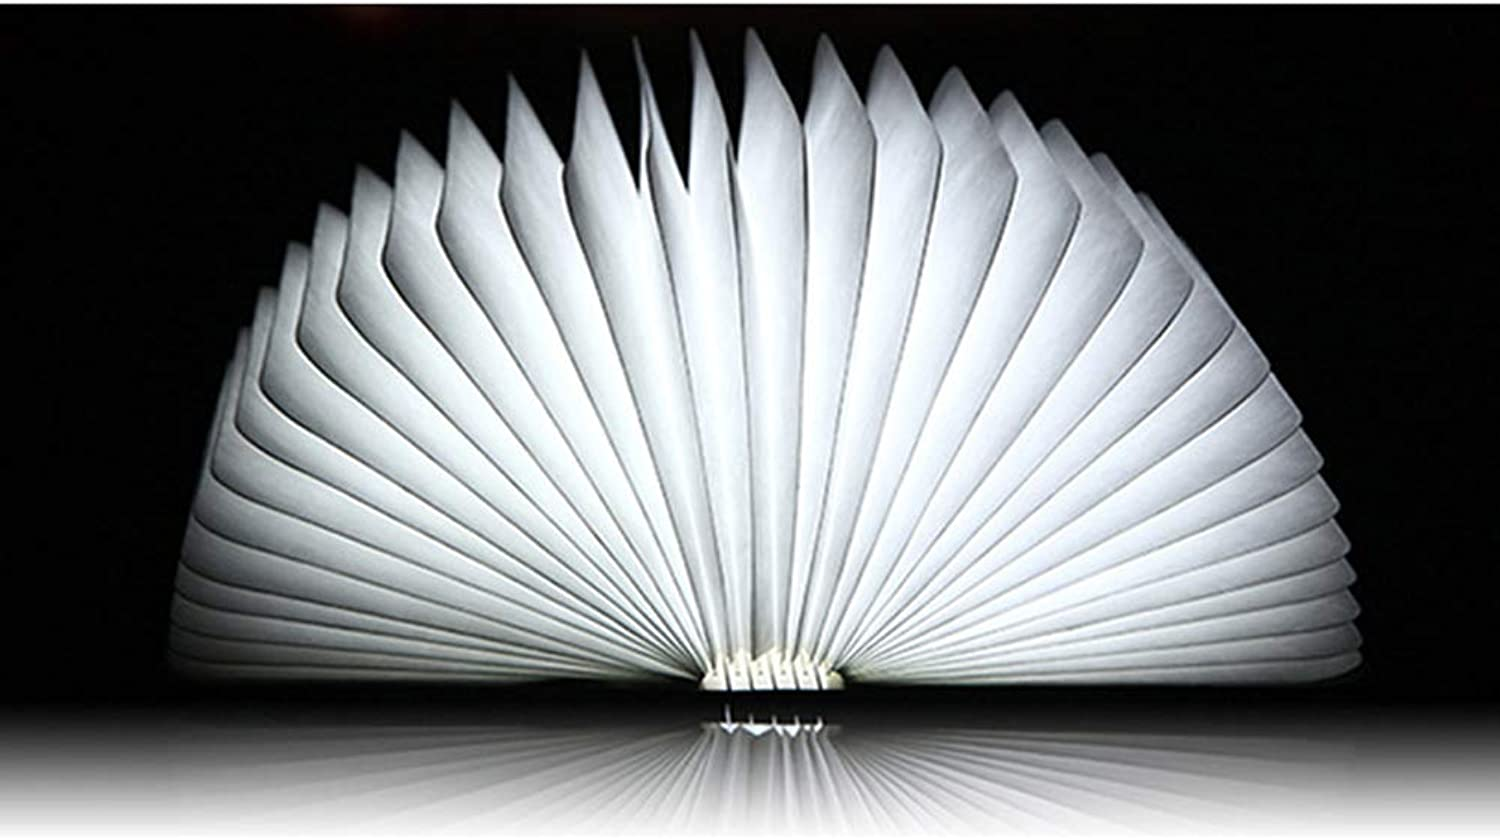 PageLED, LED, Folding, Wooden, Book, Light, Flip, PageLED, Book, Light, Can, Folded, Night Light